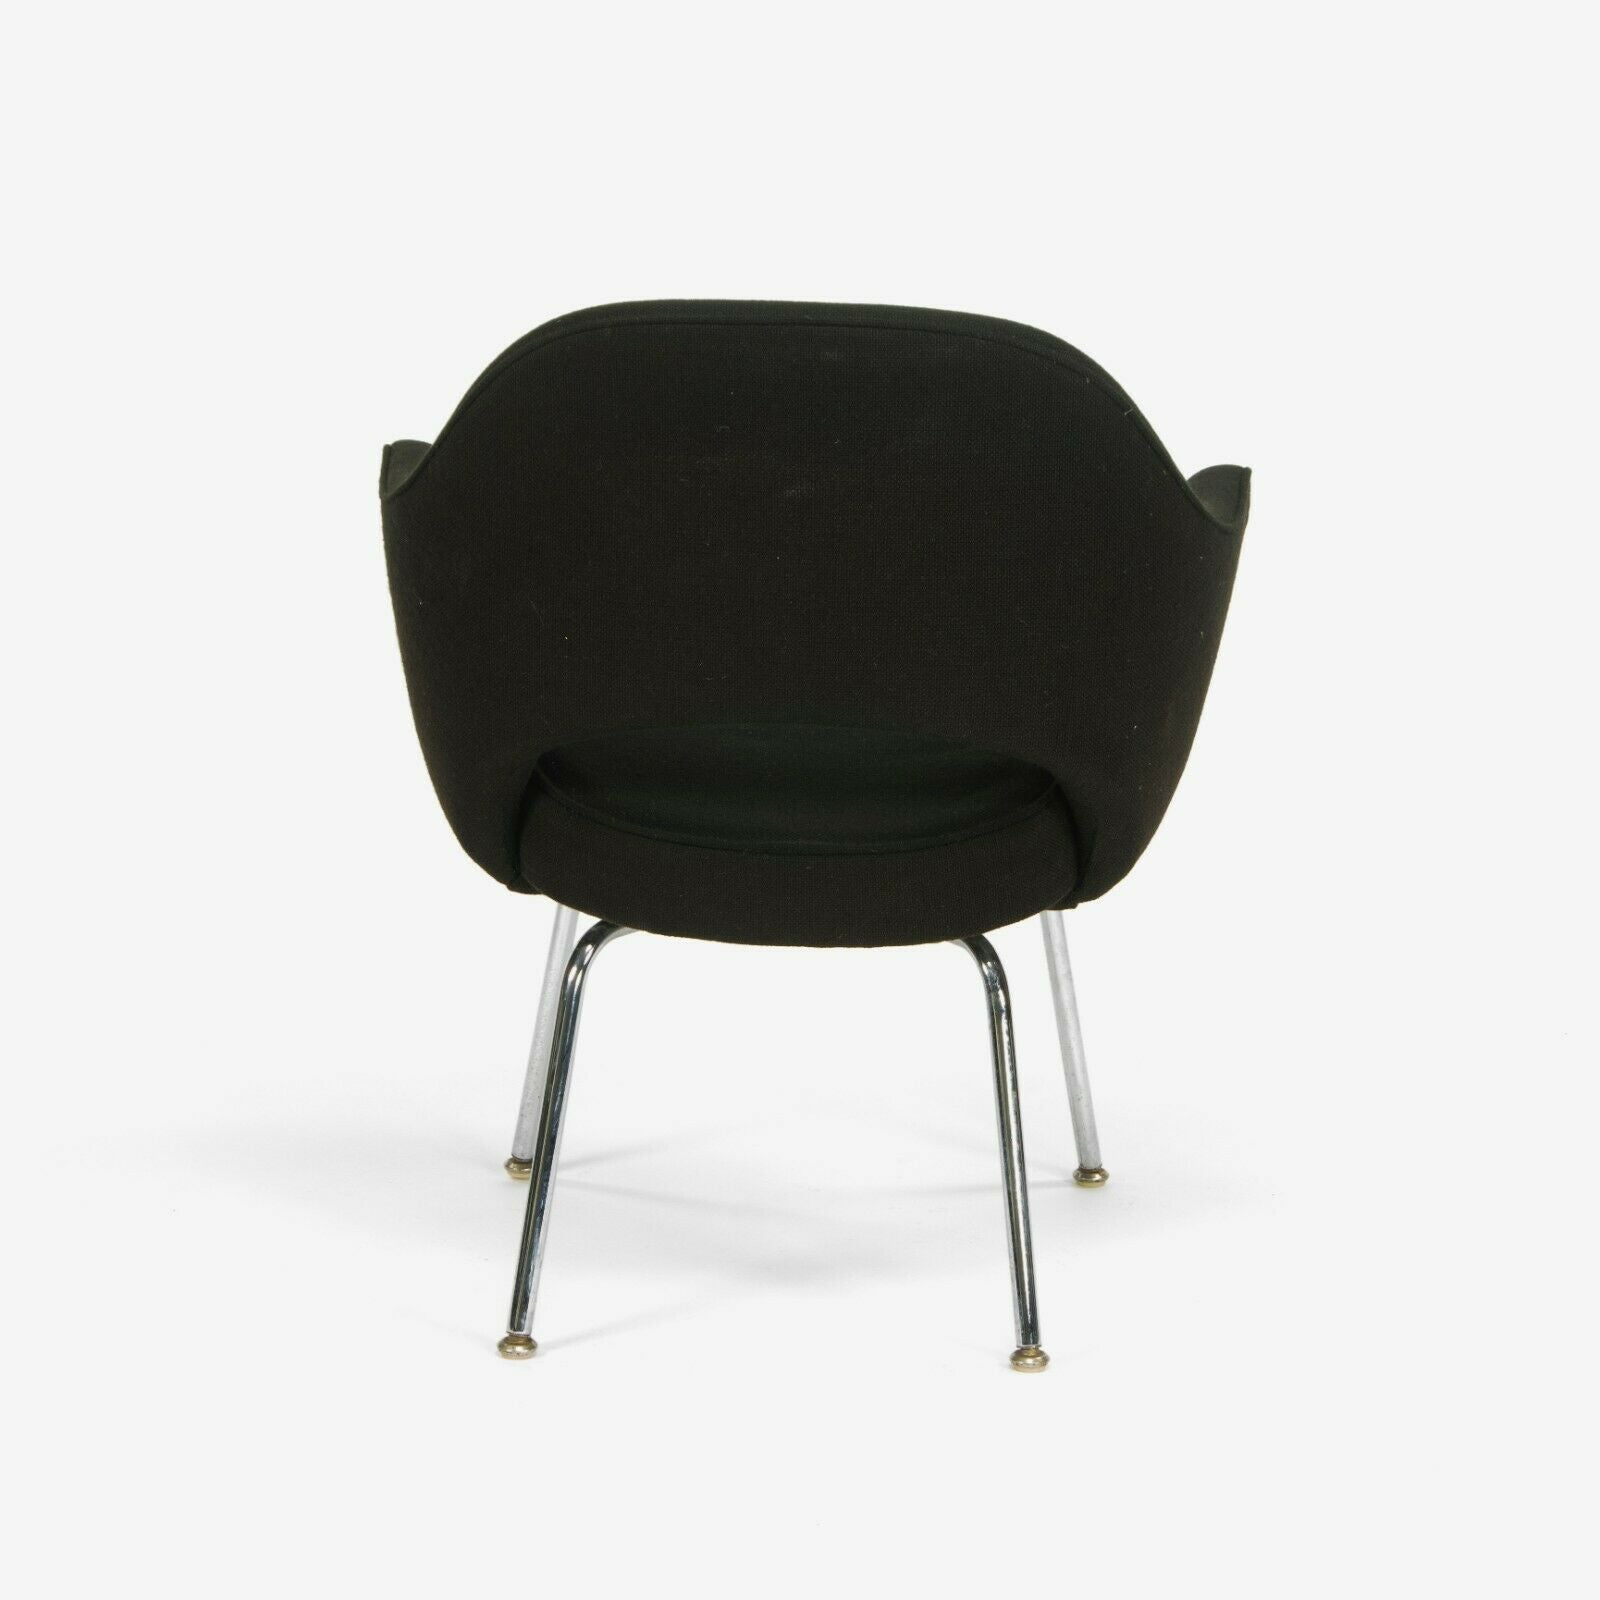 1970s Eero Saarinen for Knoll Executive Brown Fabric Arm Chair with Chrome Legs 4x Available